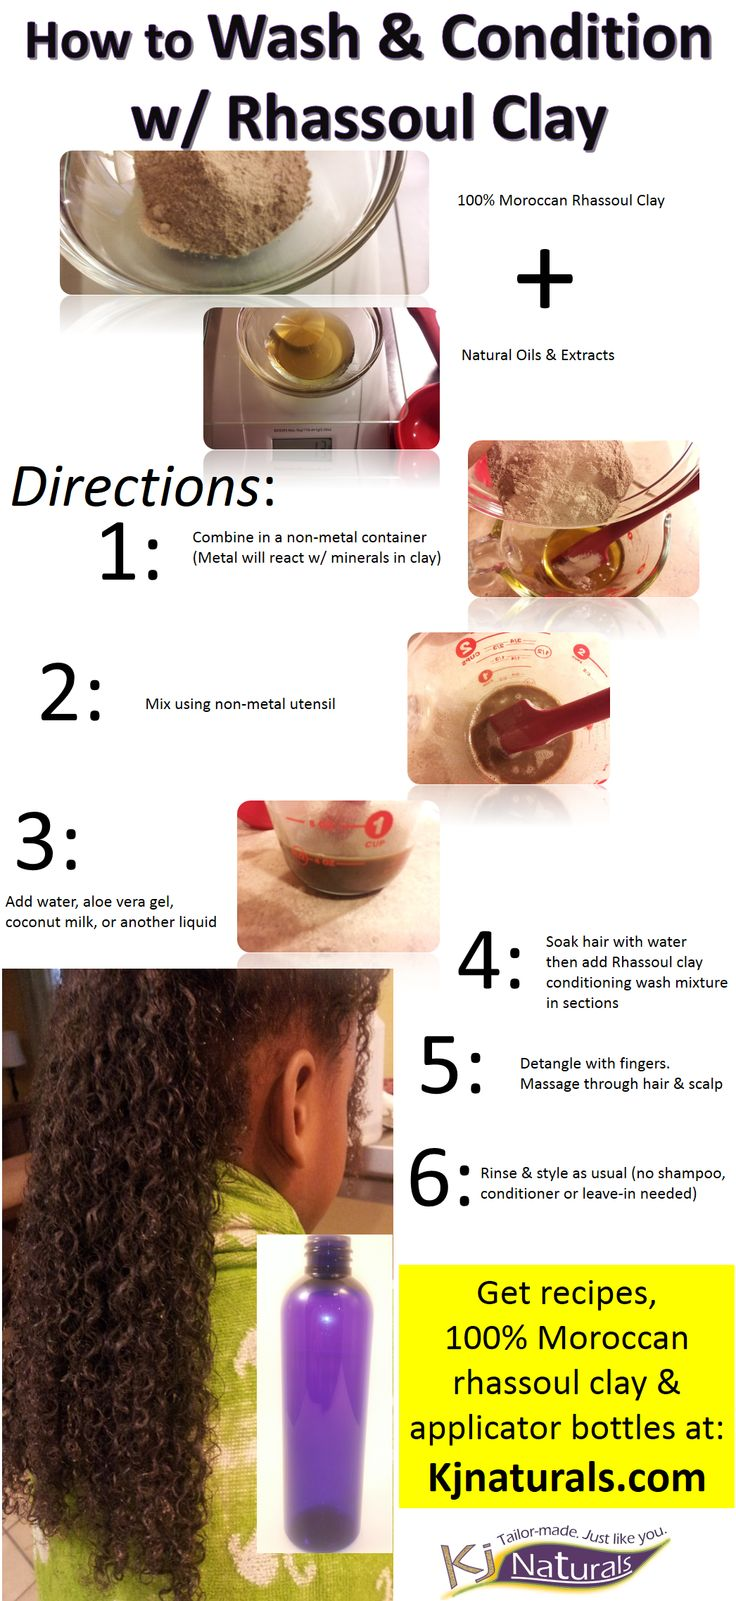 How to cleanse & condition hair w/ Moroccan rhassoul clay, a natural shampoo alternative. #rhassoulclay